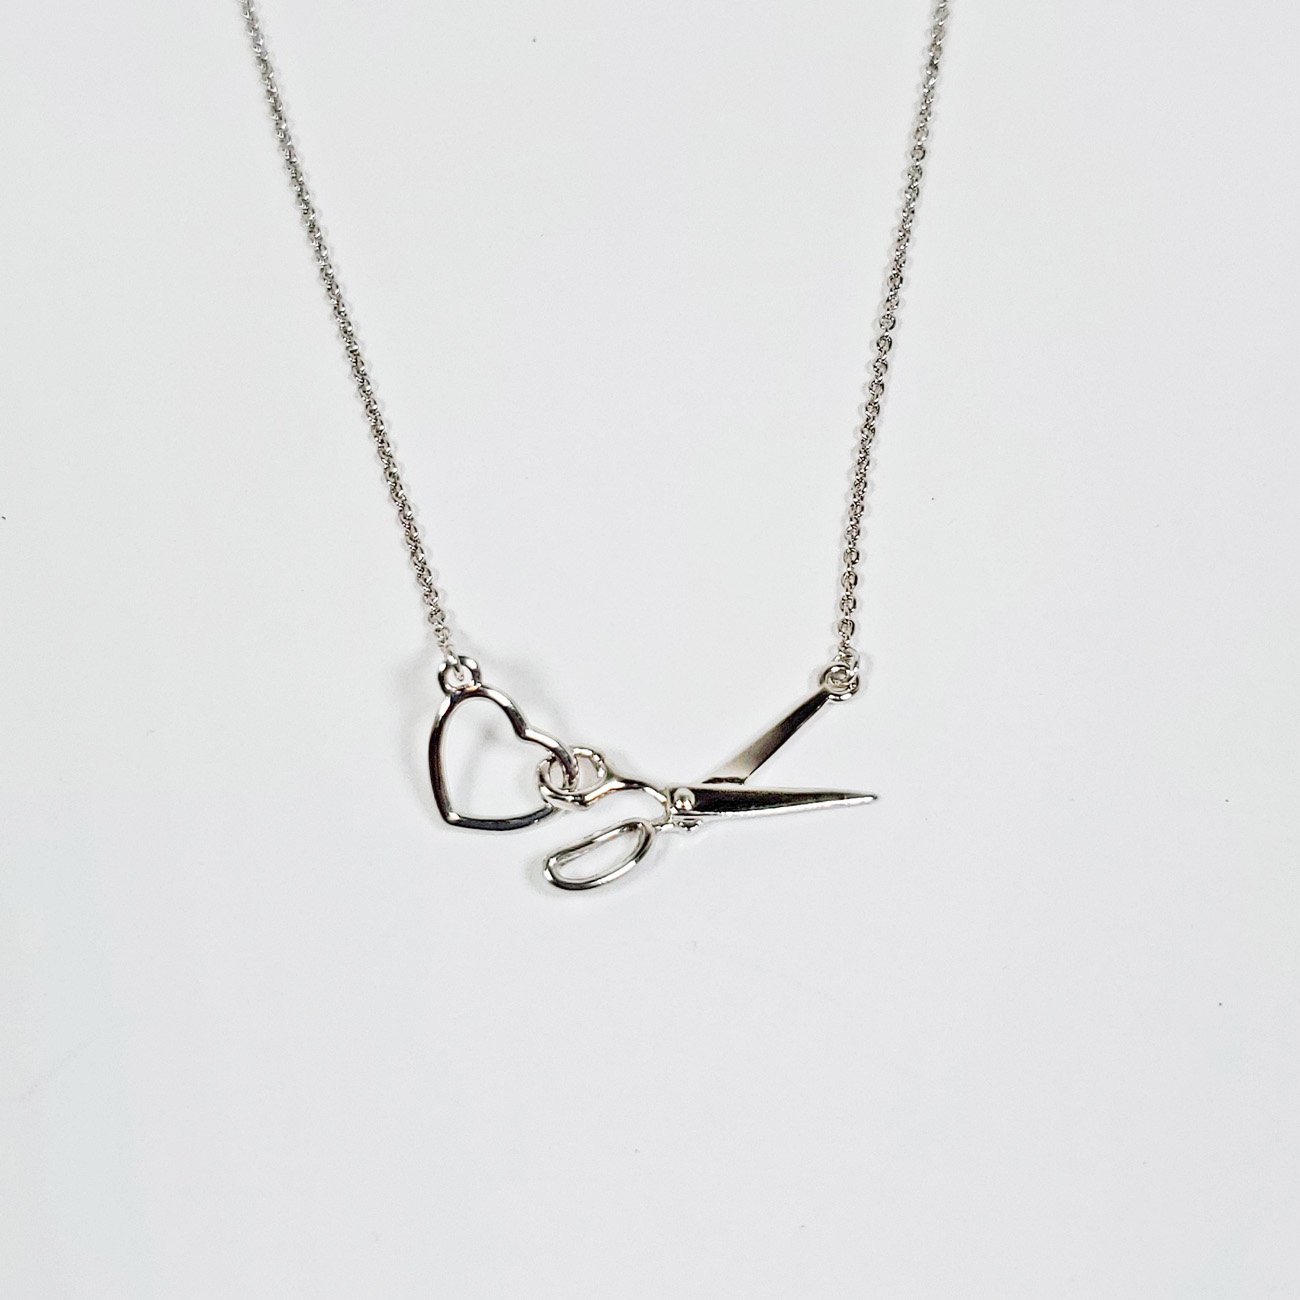 Scissor & Heart Charm Necklace Silver